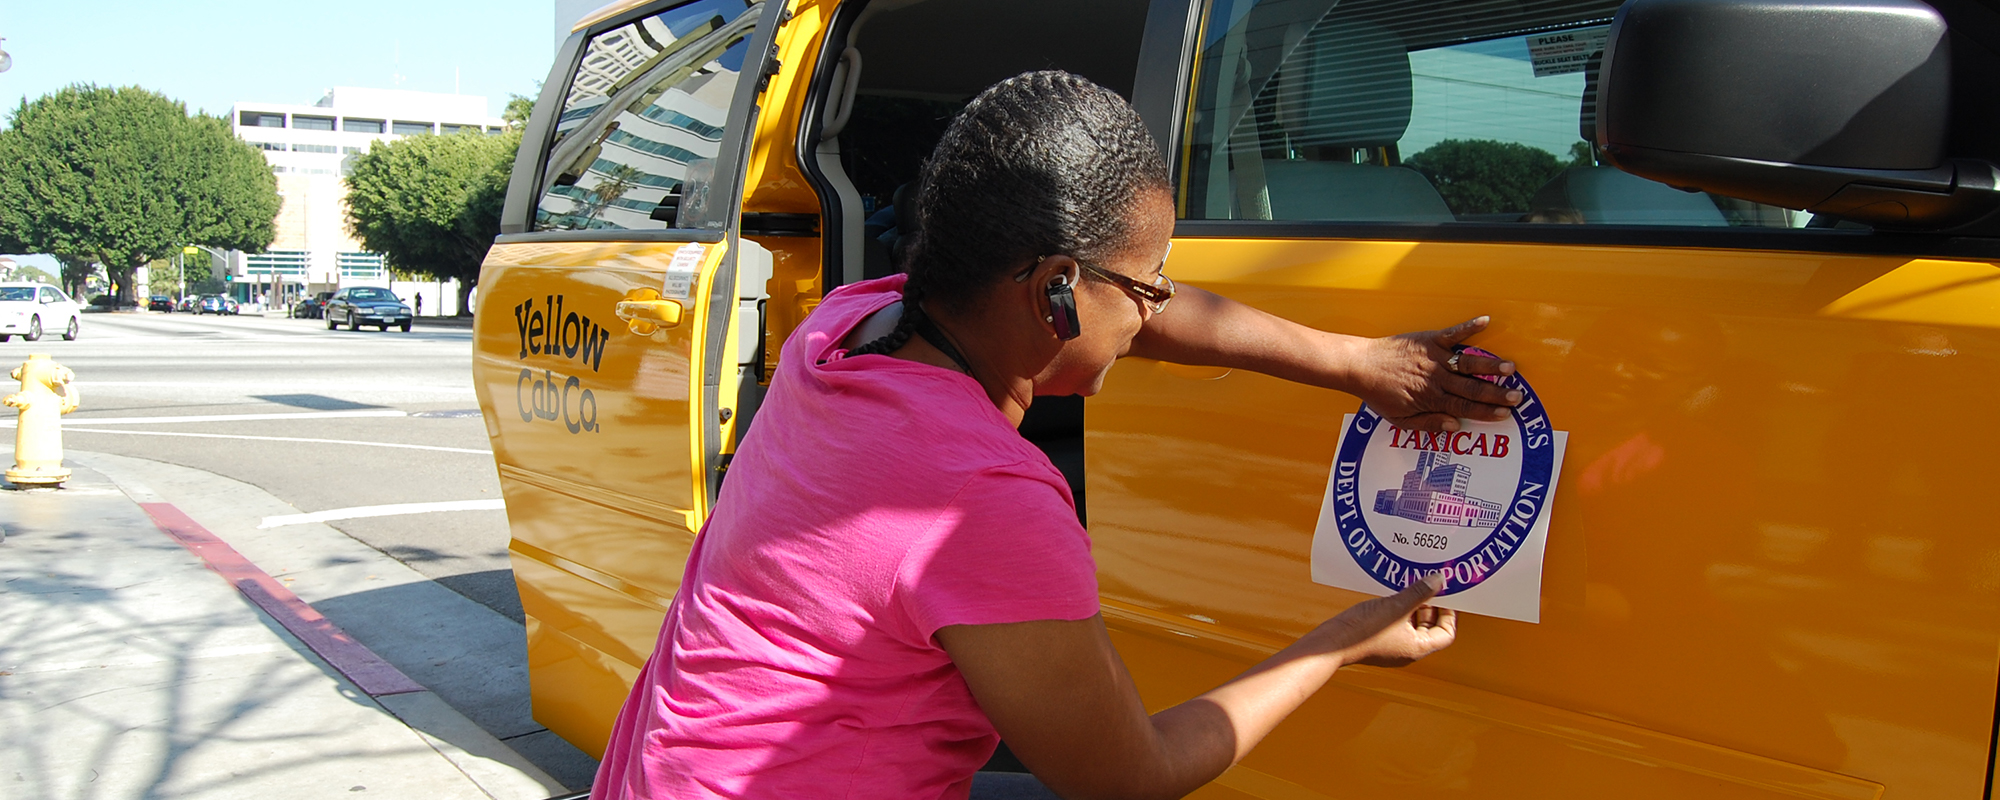 woman placing a taxi label on a yellow cab